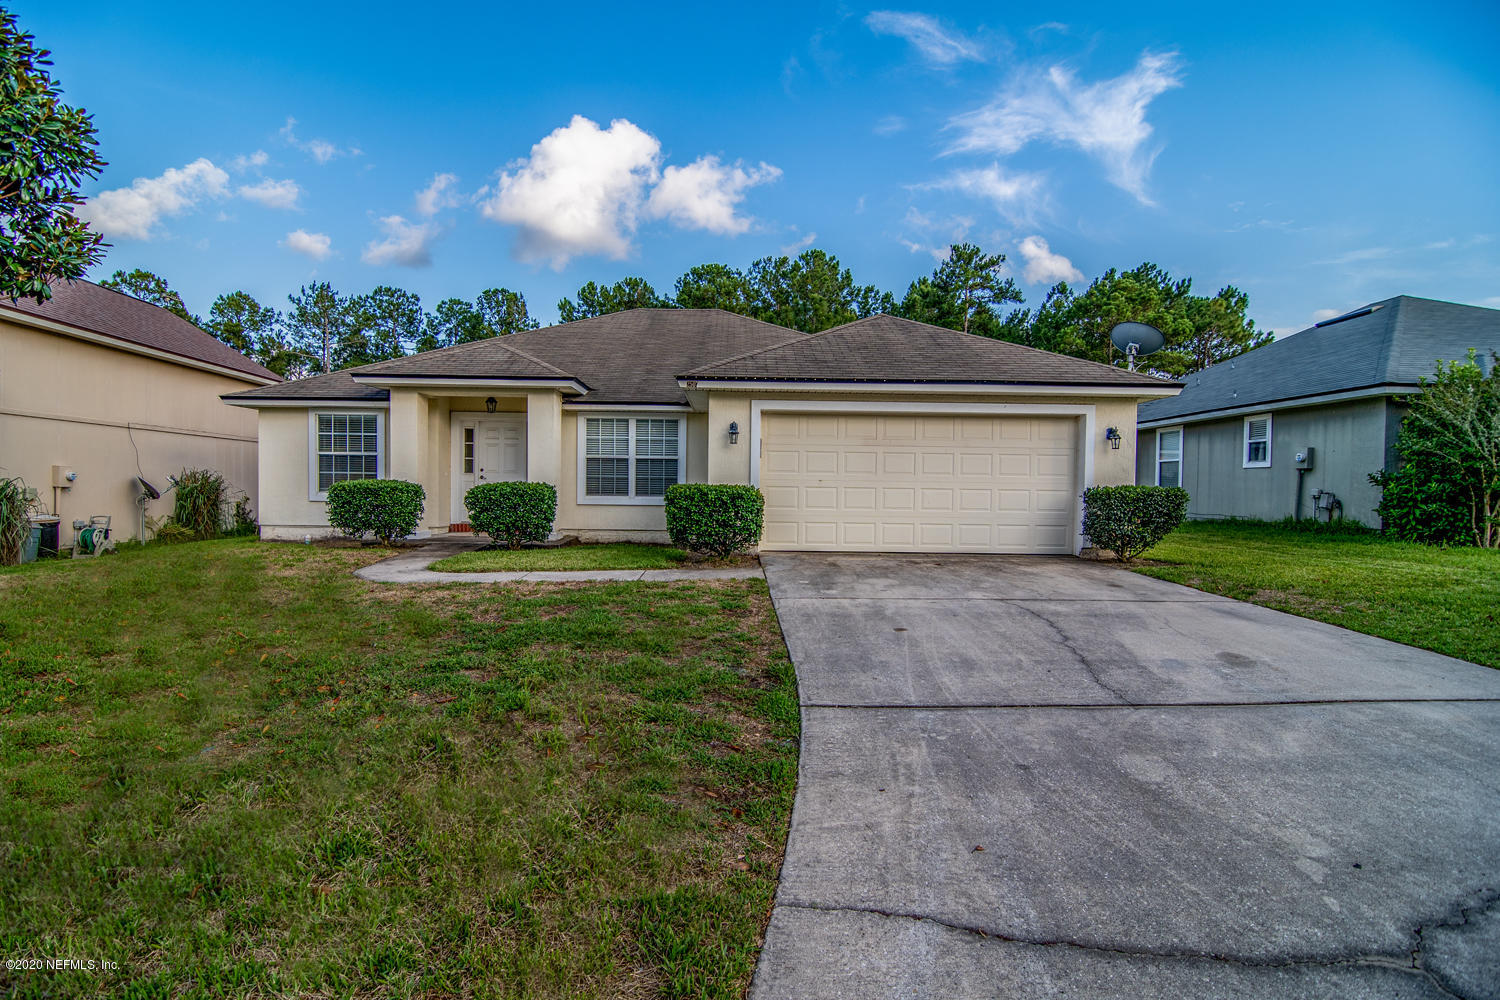 2507 CREEKFRONT, GREEN COVE SPRINGS, FLORIDA 32043, 3 Bedrooms Bedrooms, ,2 BathroomsBathrooms,Residential,For sale,CREEKFRONT,1056534